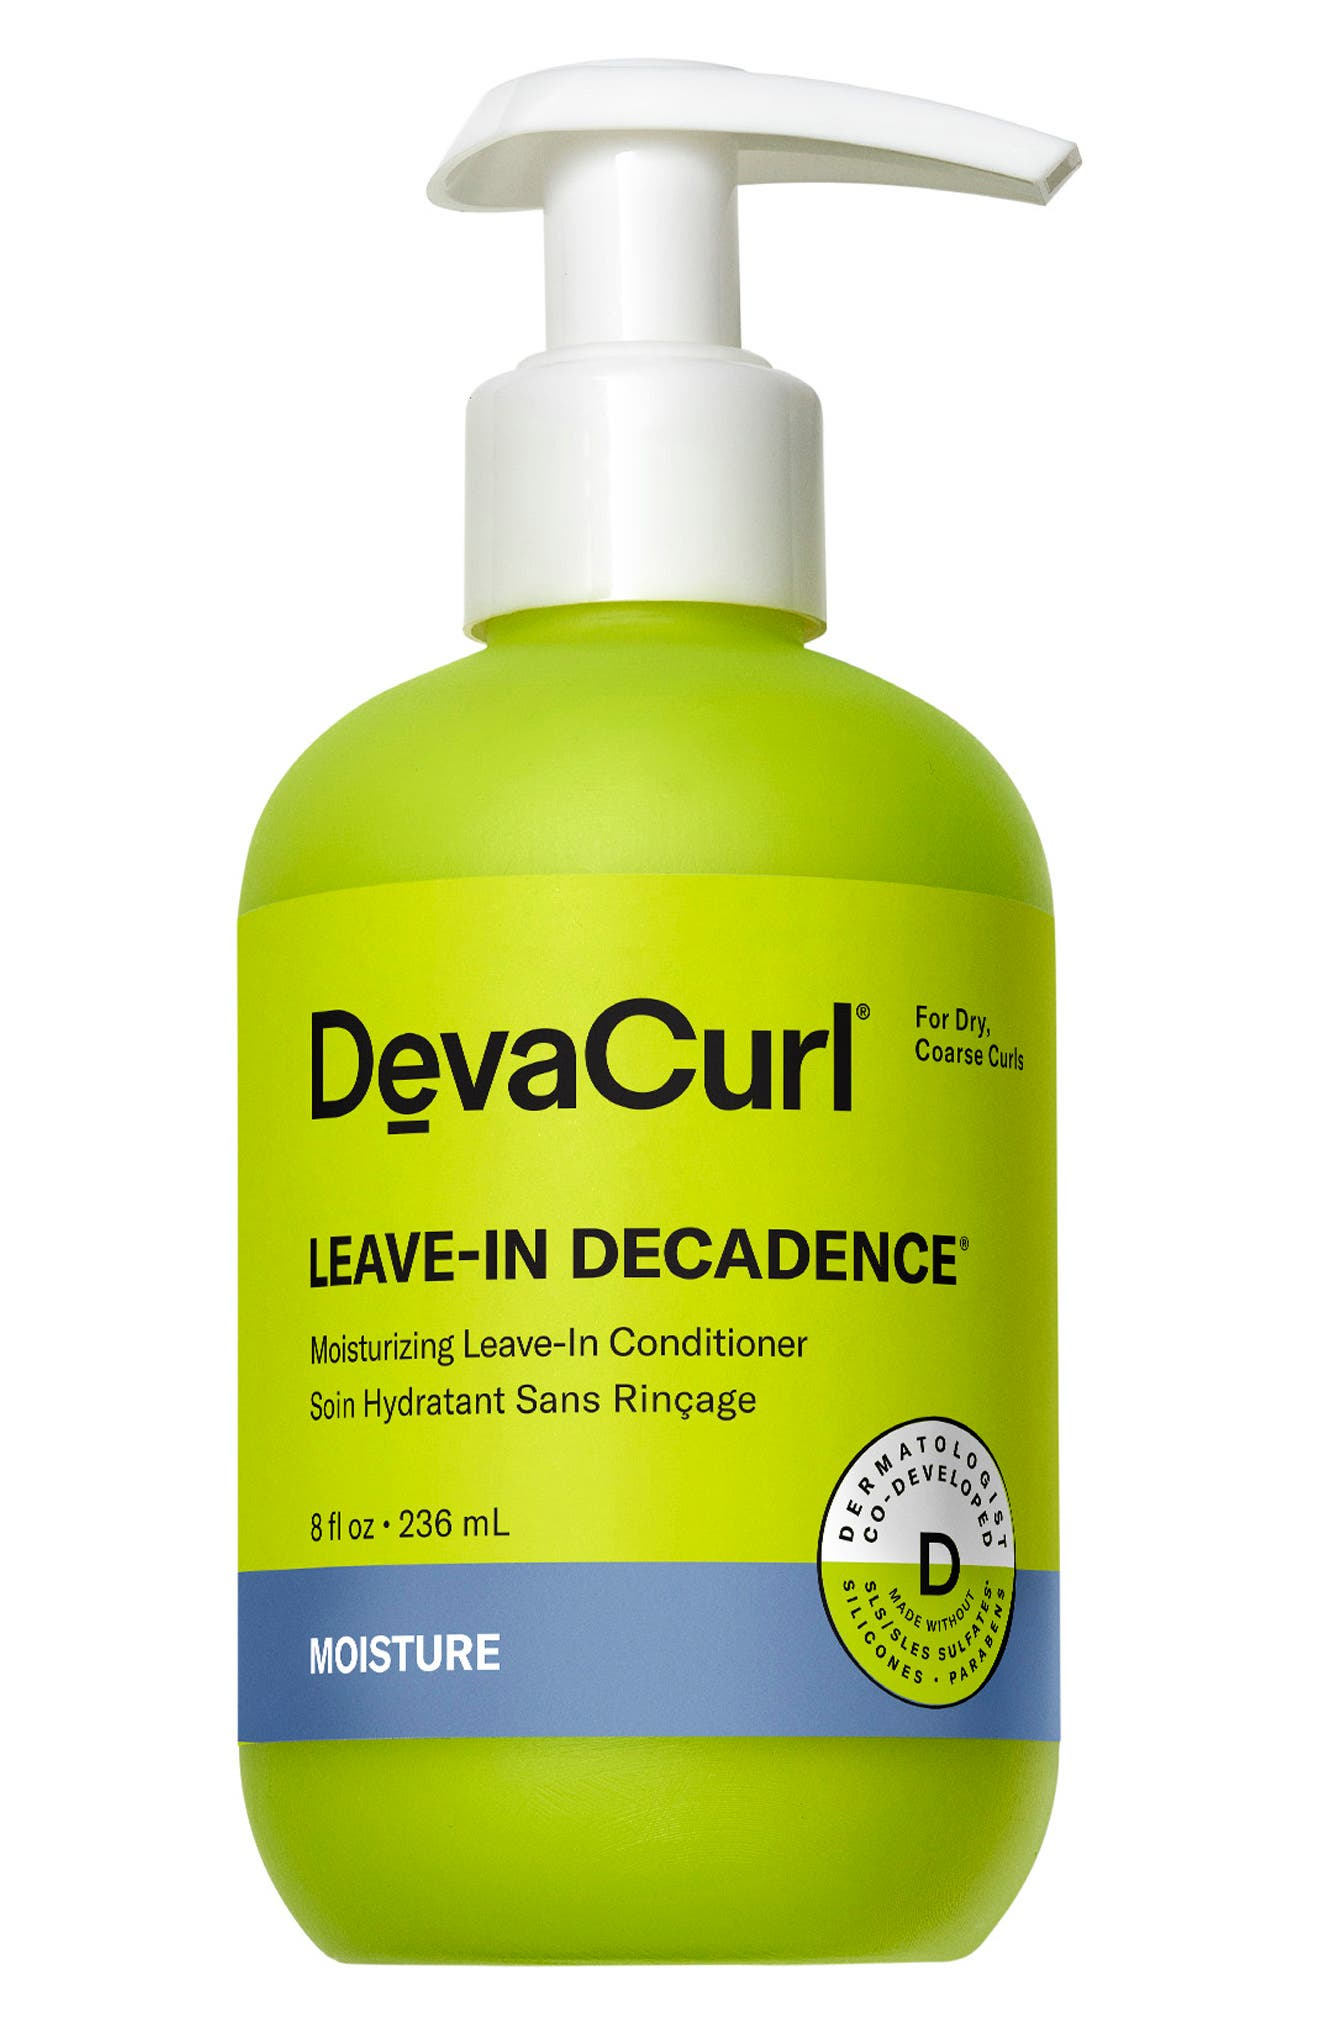 Leave-In Decadence Moisturizing Leave-In Conditioner